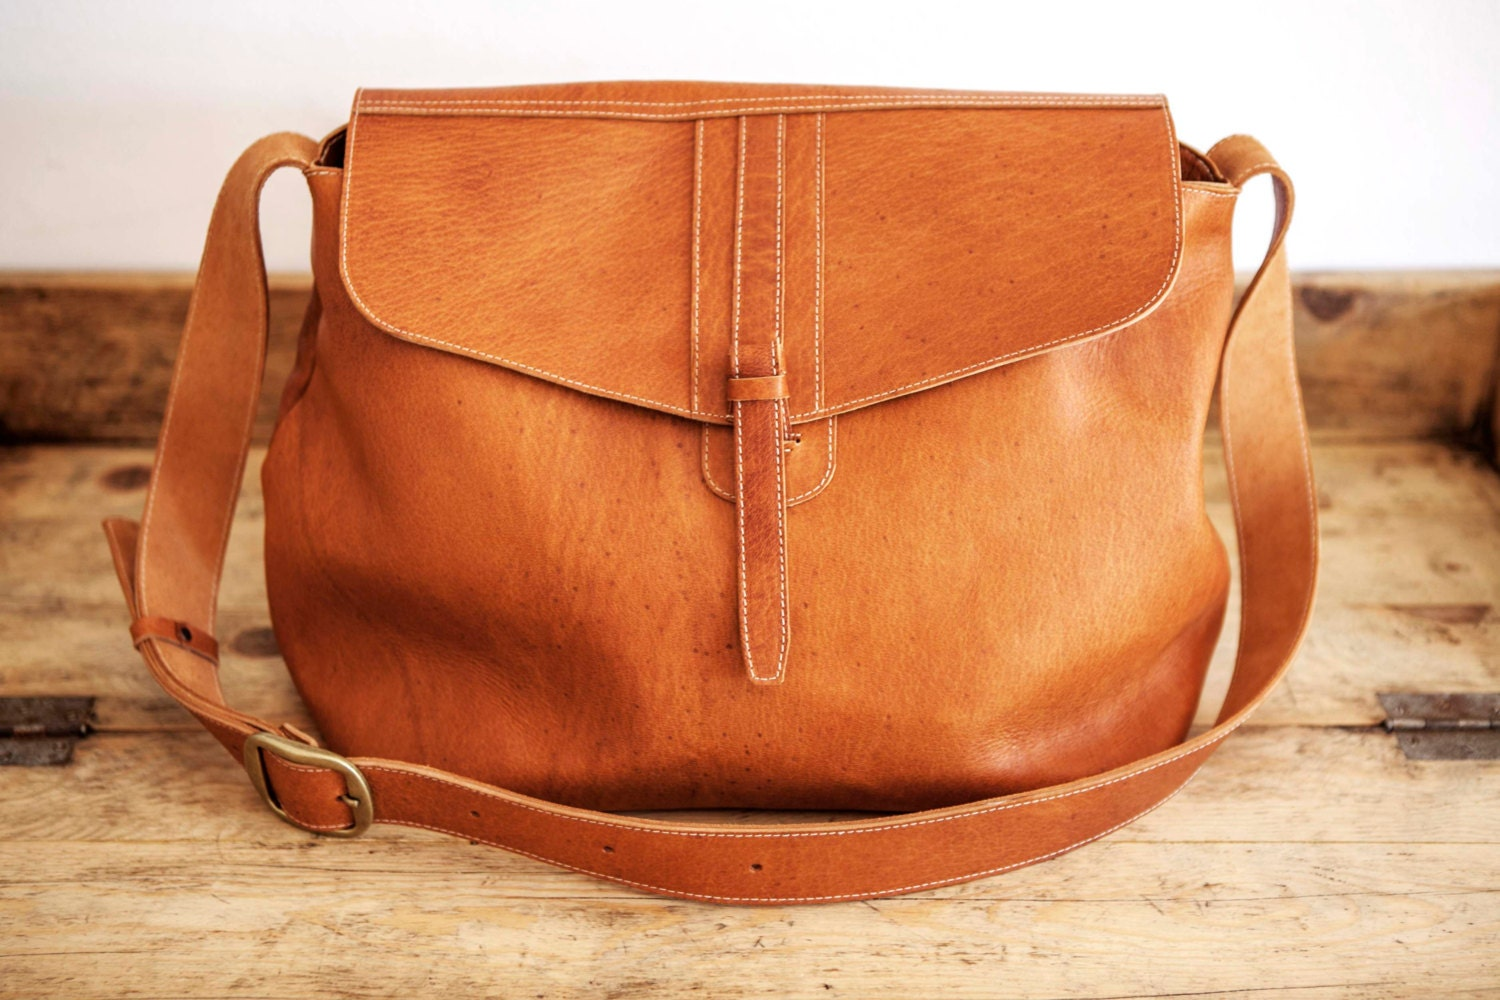 SATCHEL Leather Bag // Big Leather handbag // Brown coach